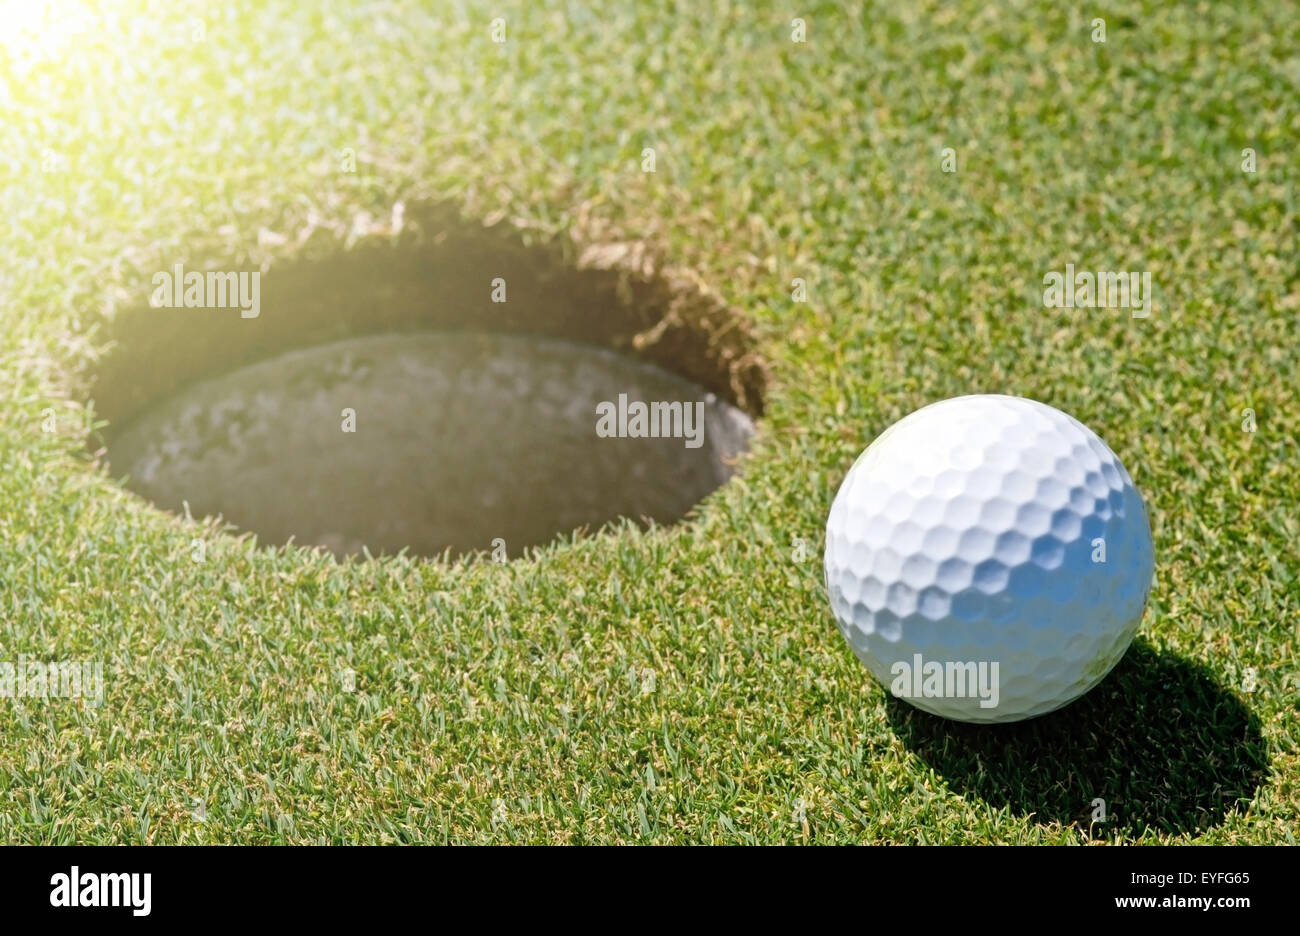 Golf ball next to a hole on a golf course - Stock Image